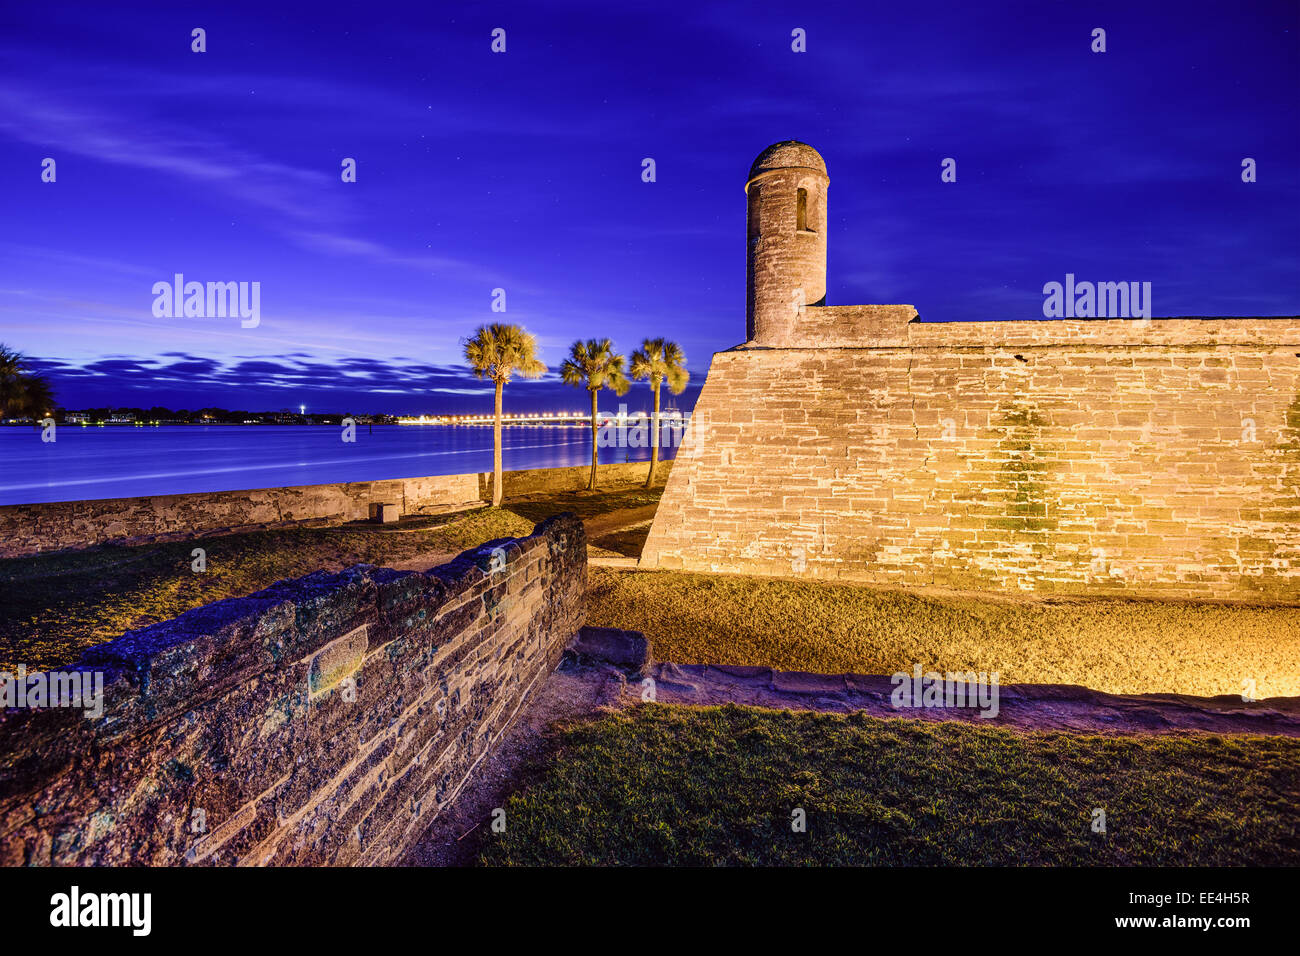 Marcos Stock Photos & Marcos Stock Images - Alamy